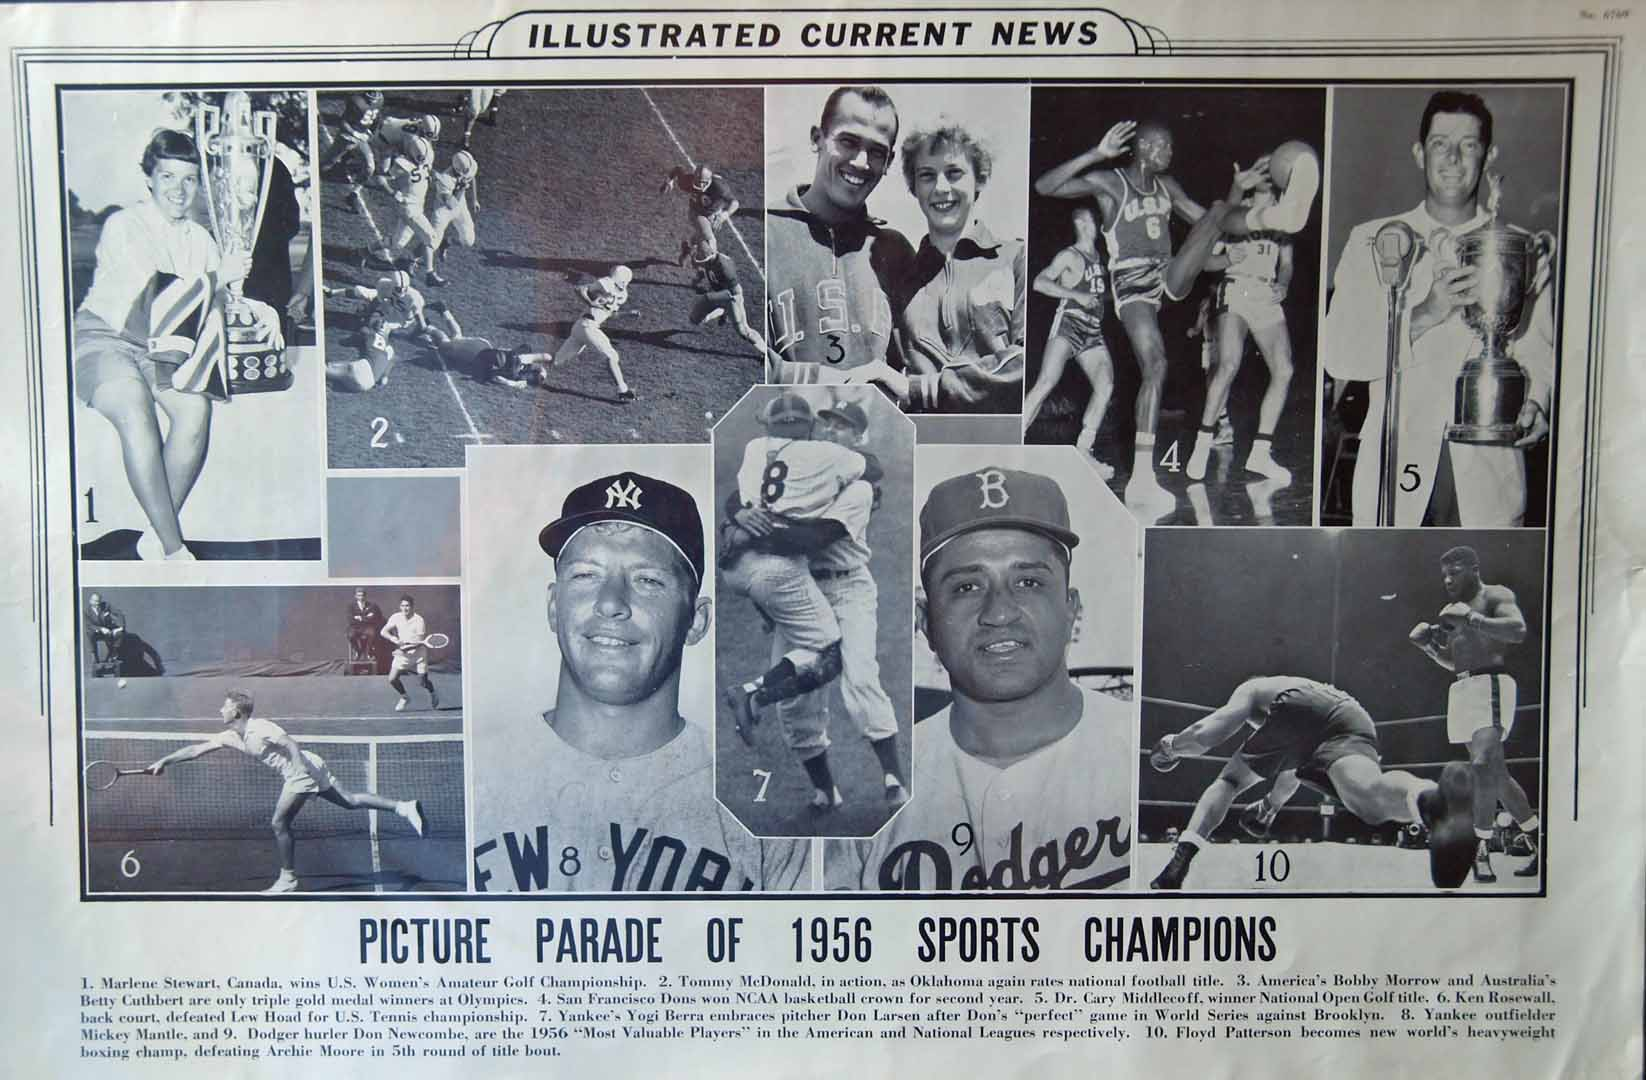 1956 illustrated current news